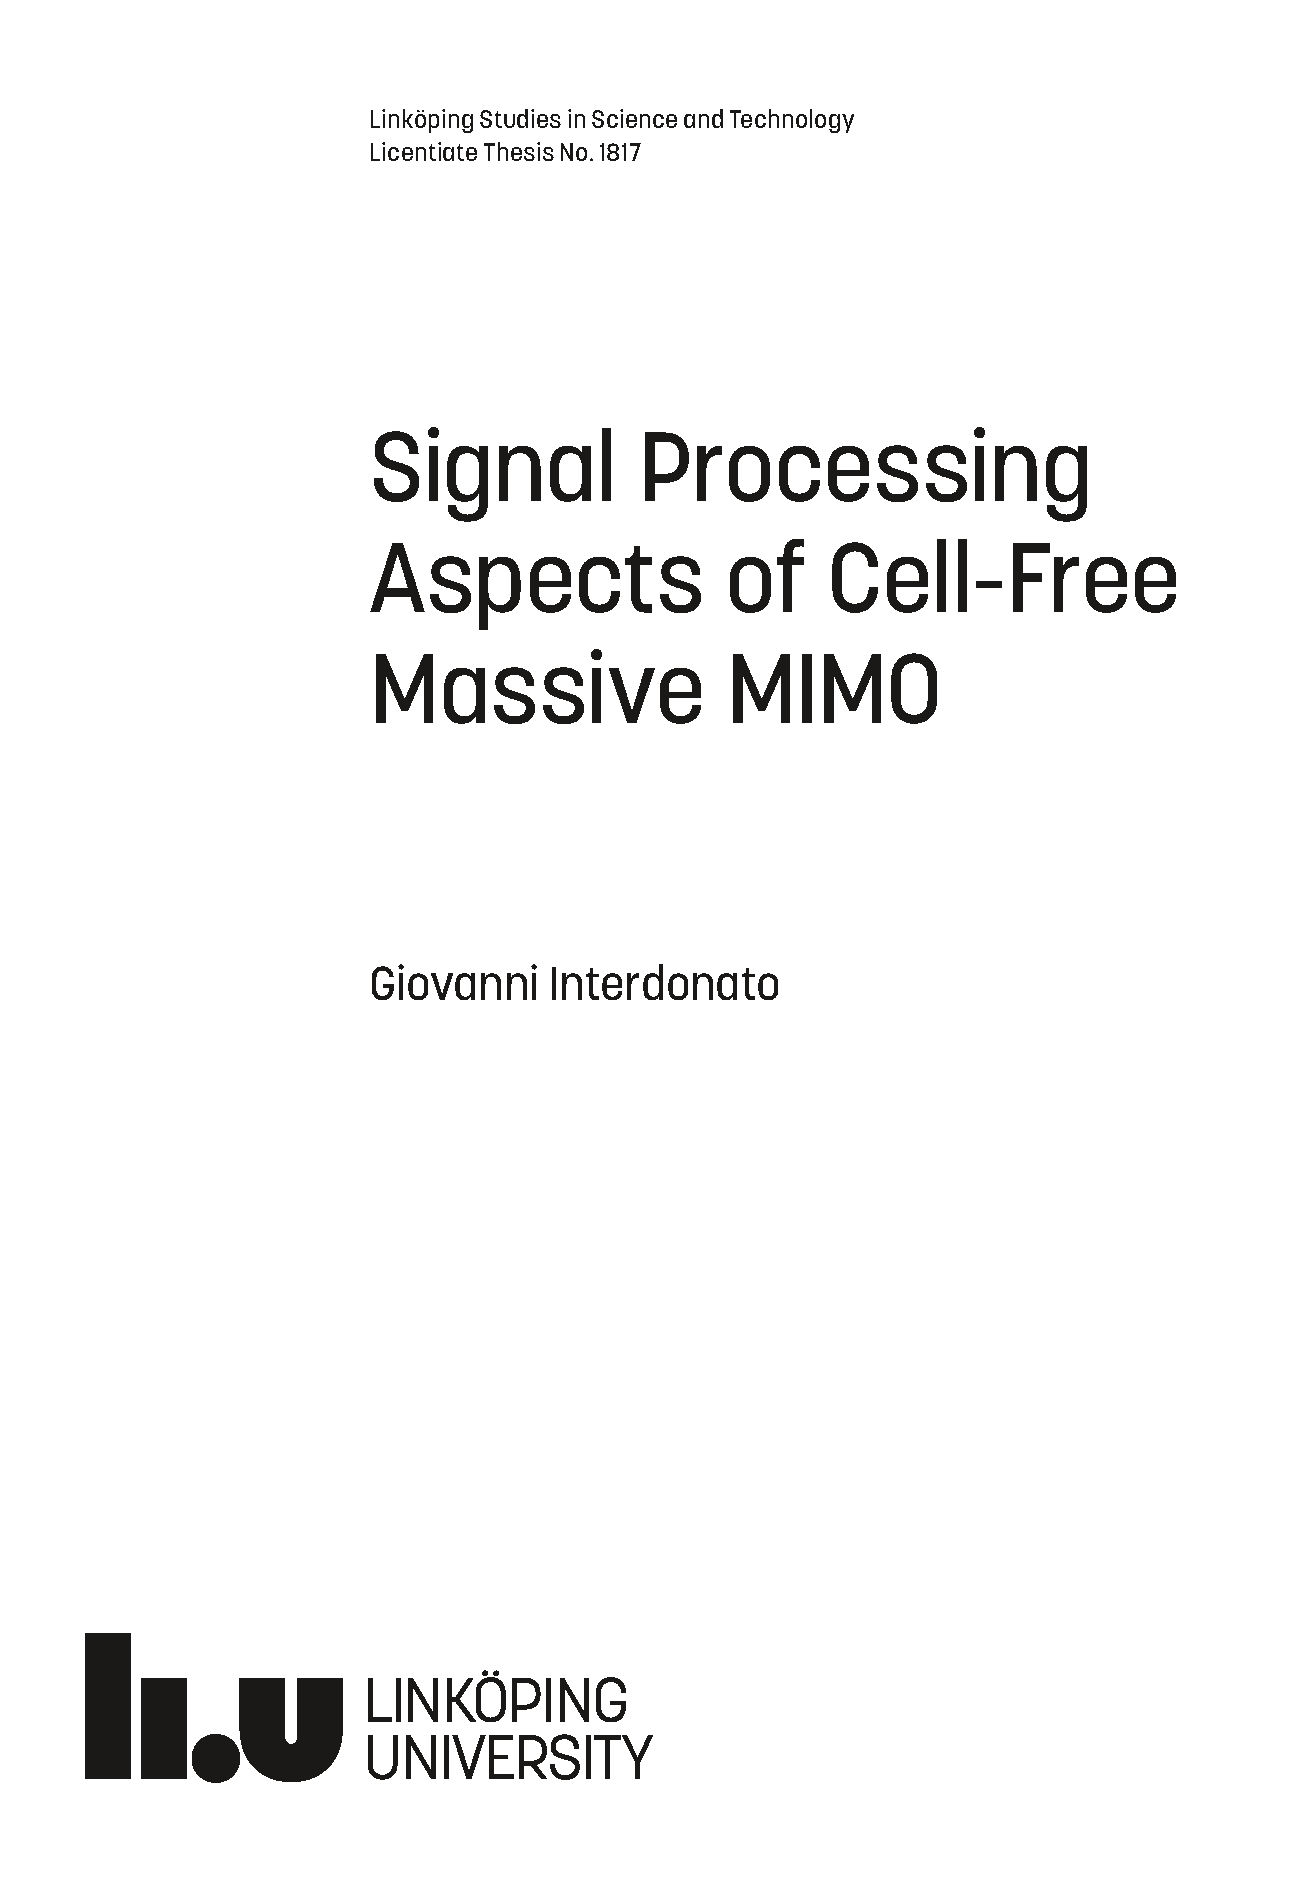 Signal Processing Aspects of Cell-Free Massive MIMO